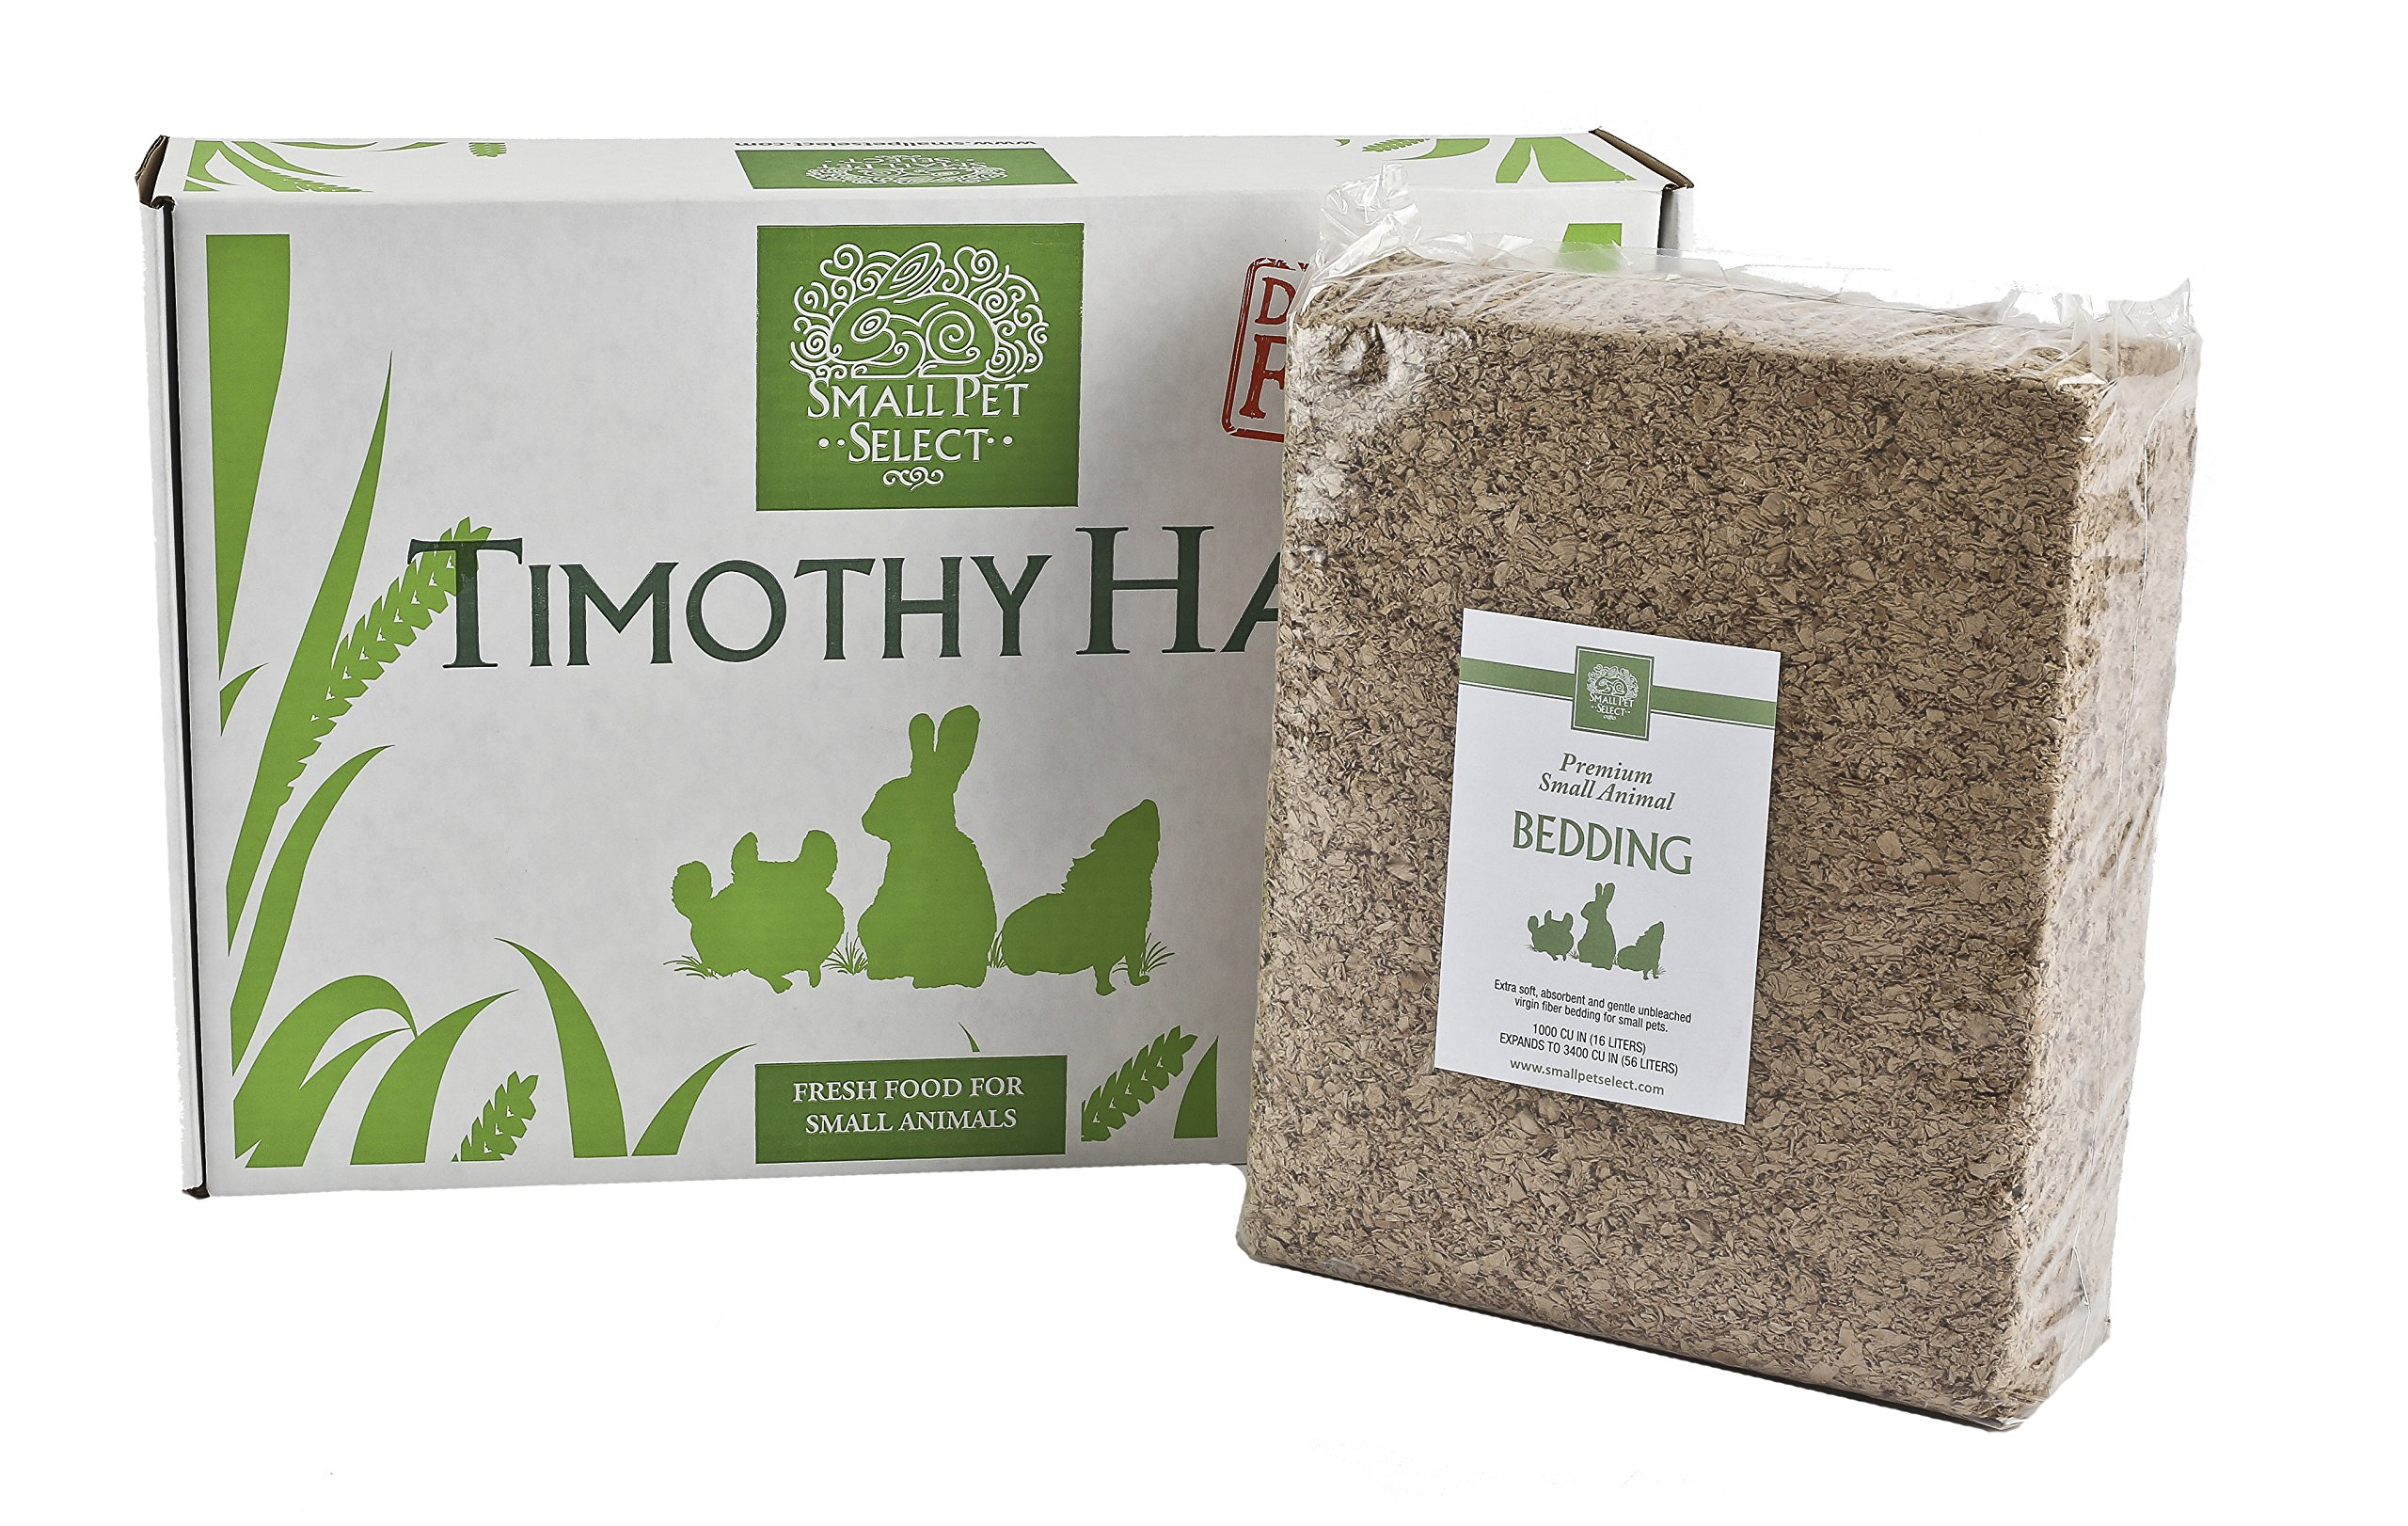 Small Pet Select Timothy Hay And Bedding Combo Pack: Timothy Hay (10 Lb.), Bedding (56L) by Small Pet Select